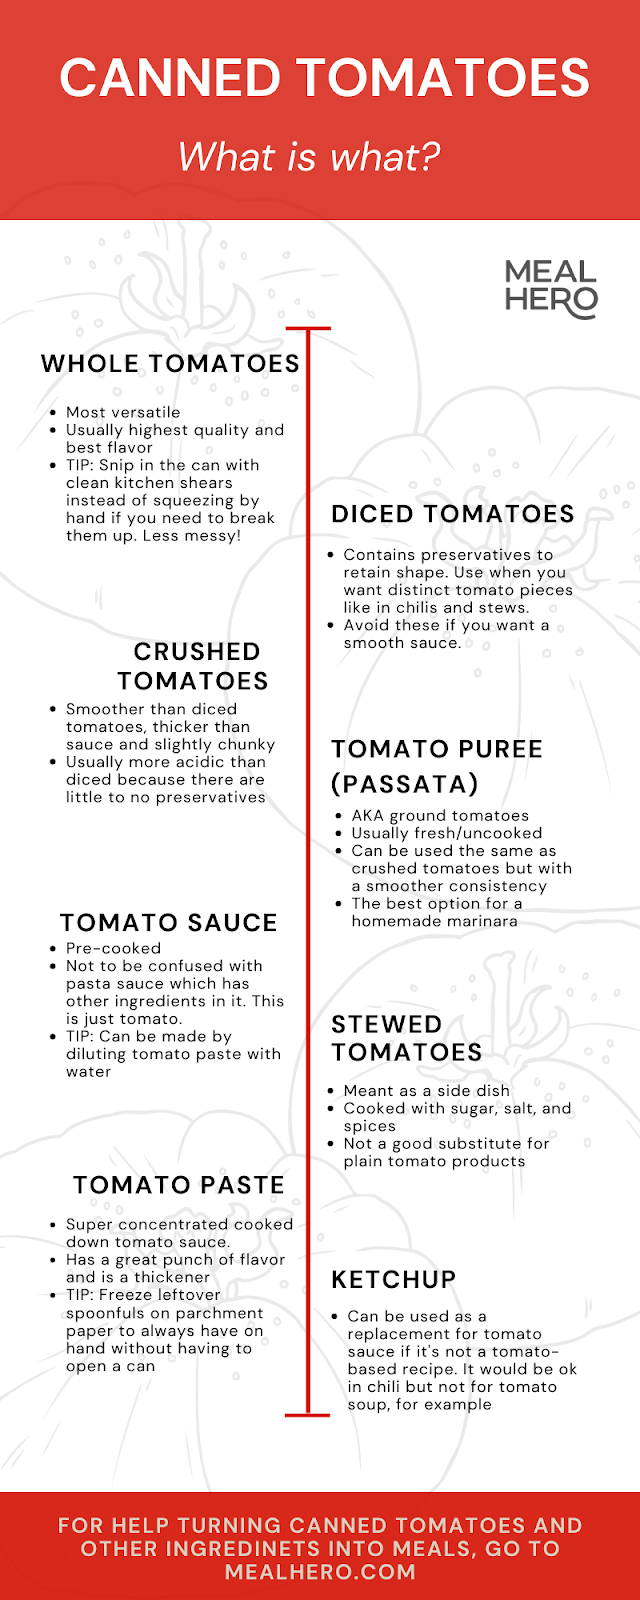 A guide to different types of canned tomatoes and their uses